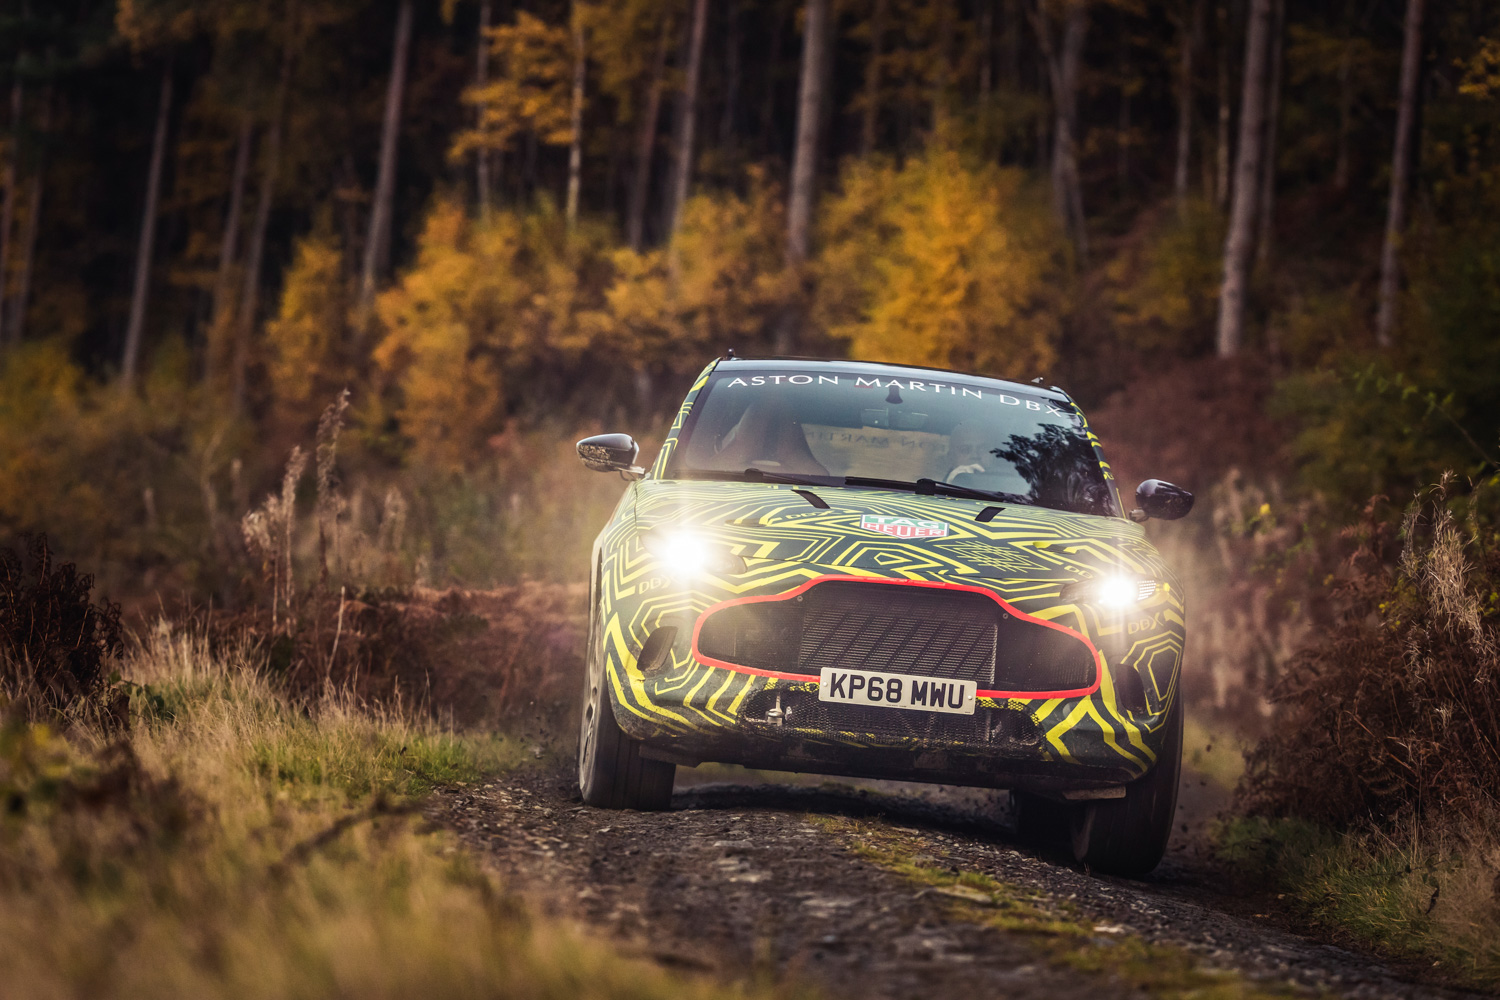 Aston Martin DBX prototype driving in woods